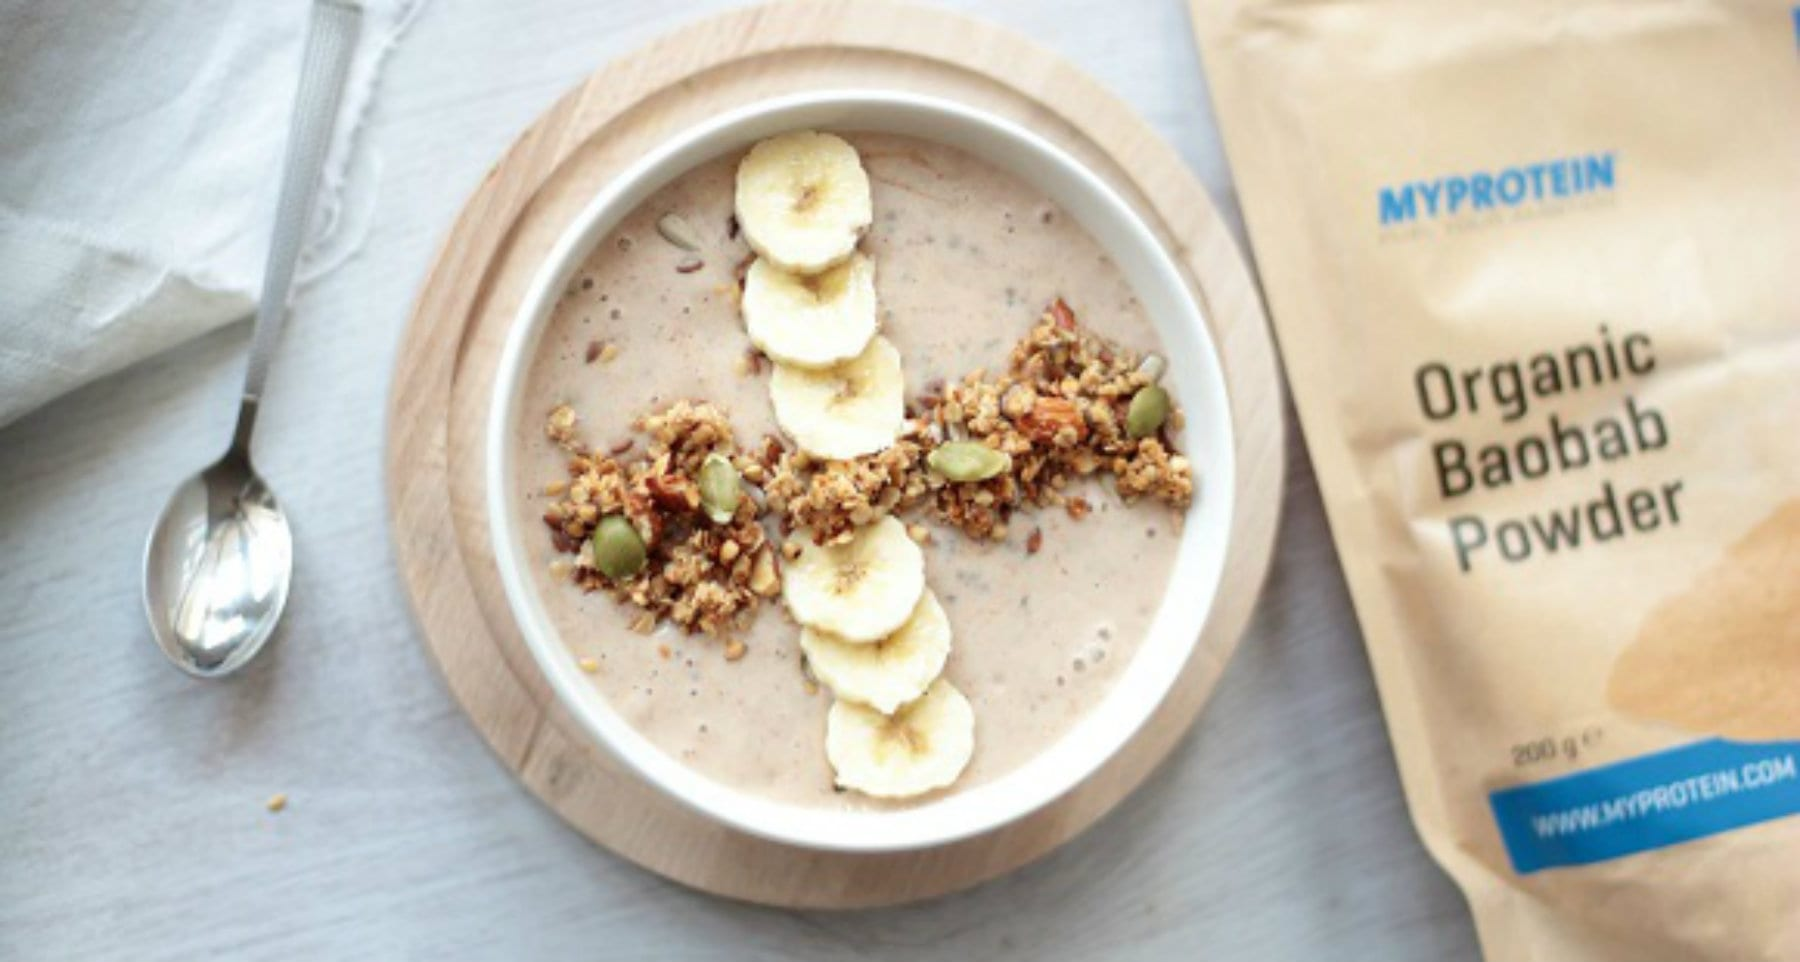 baobab powder recipes